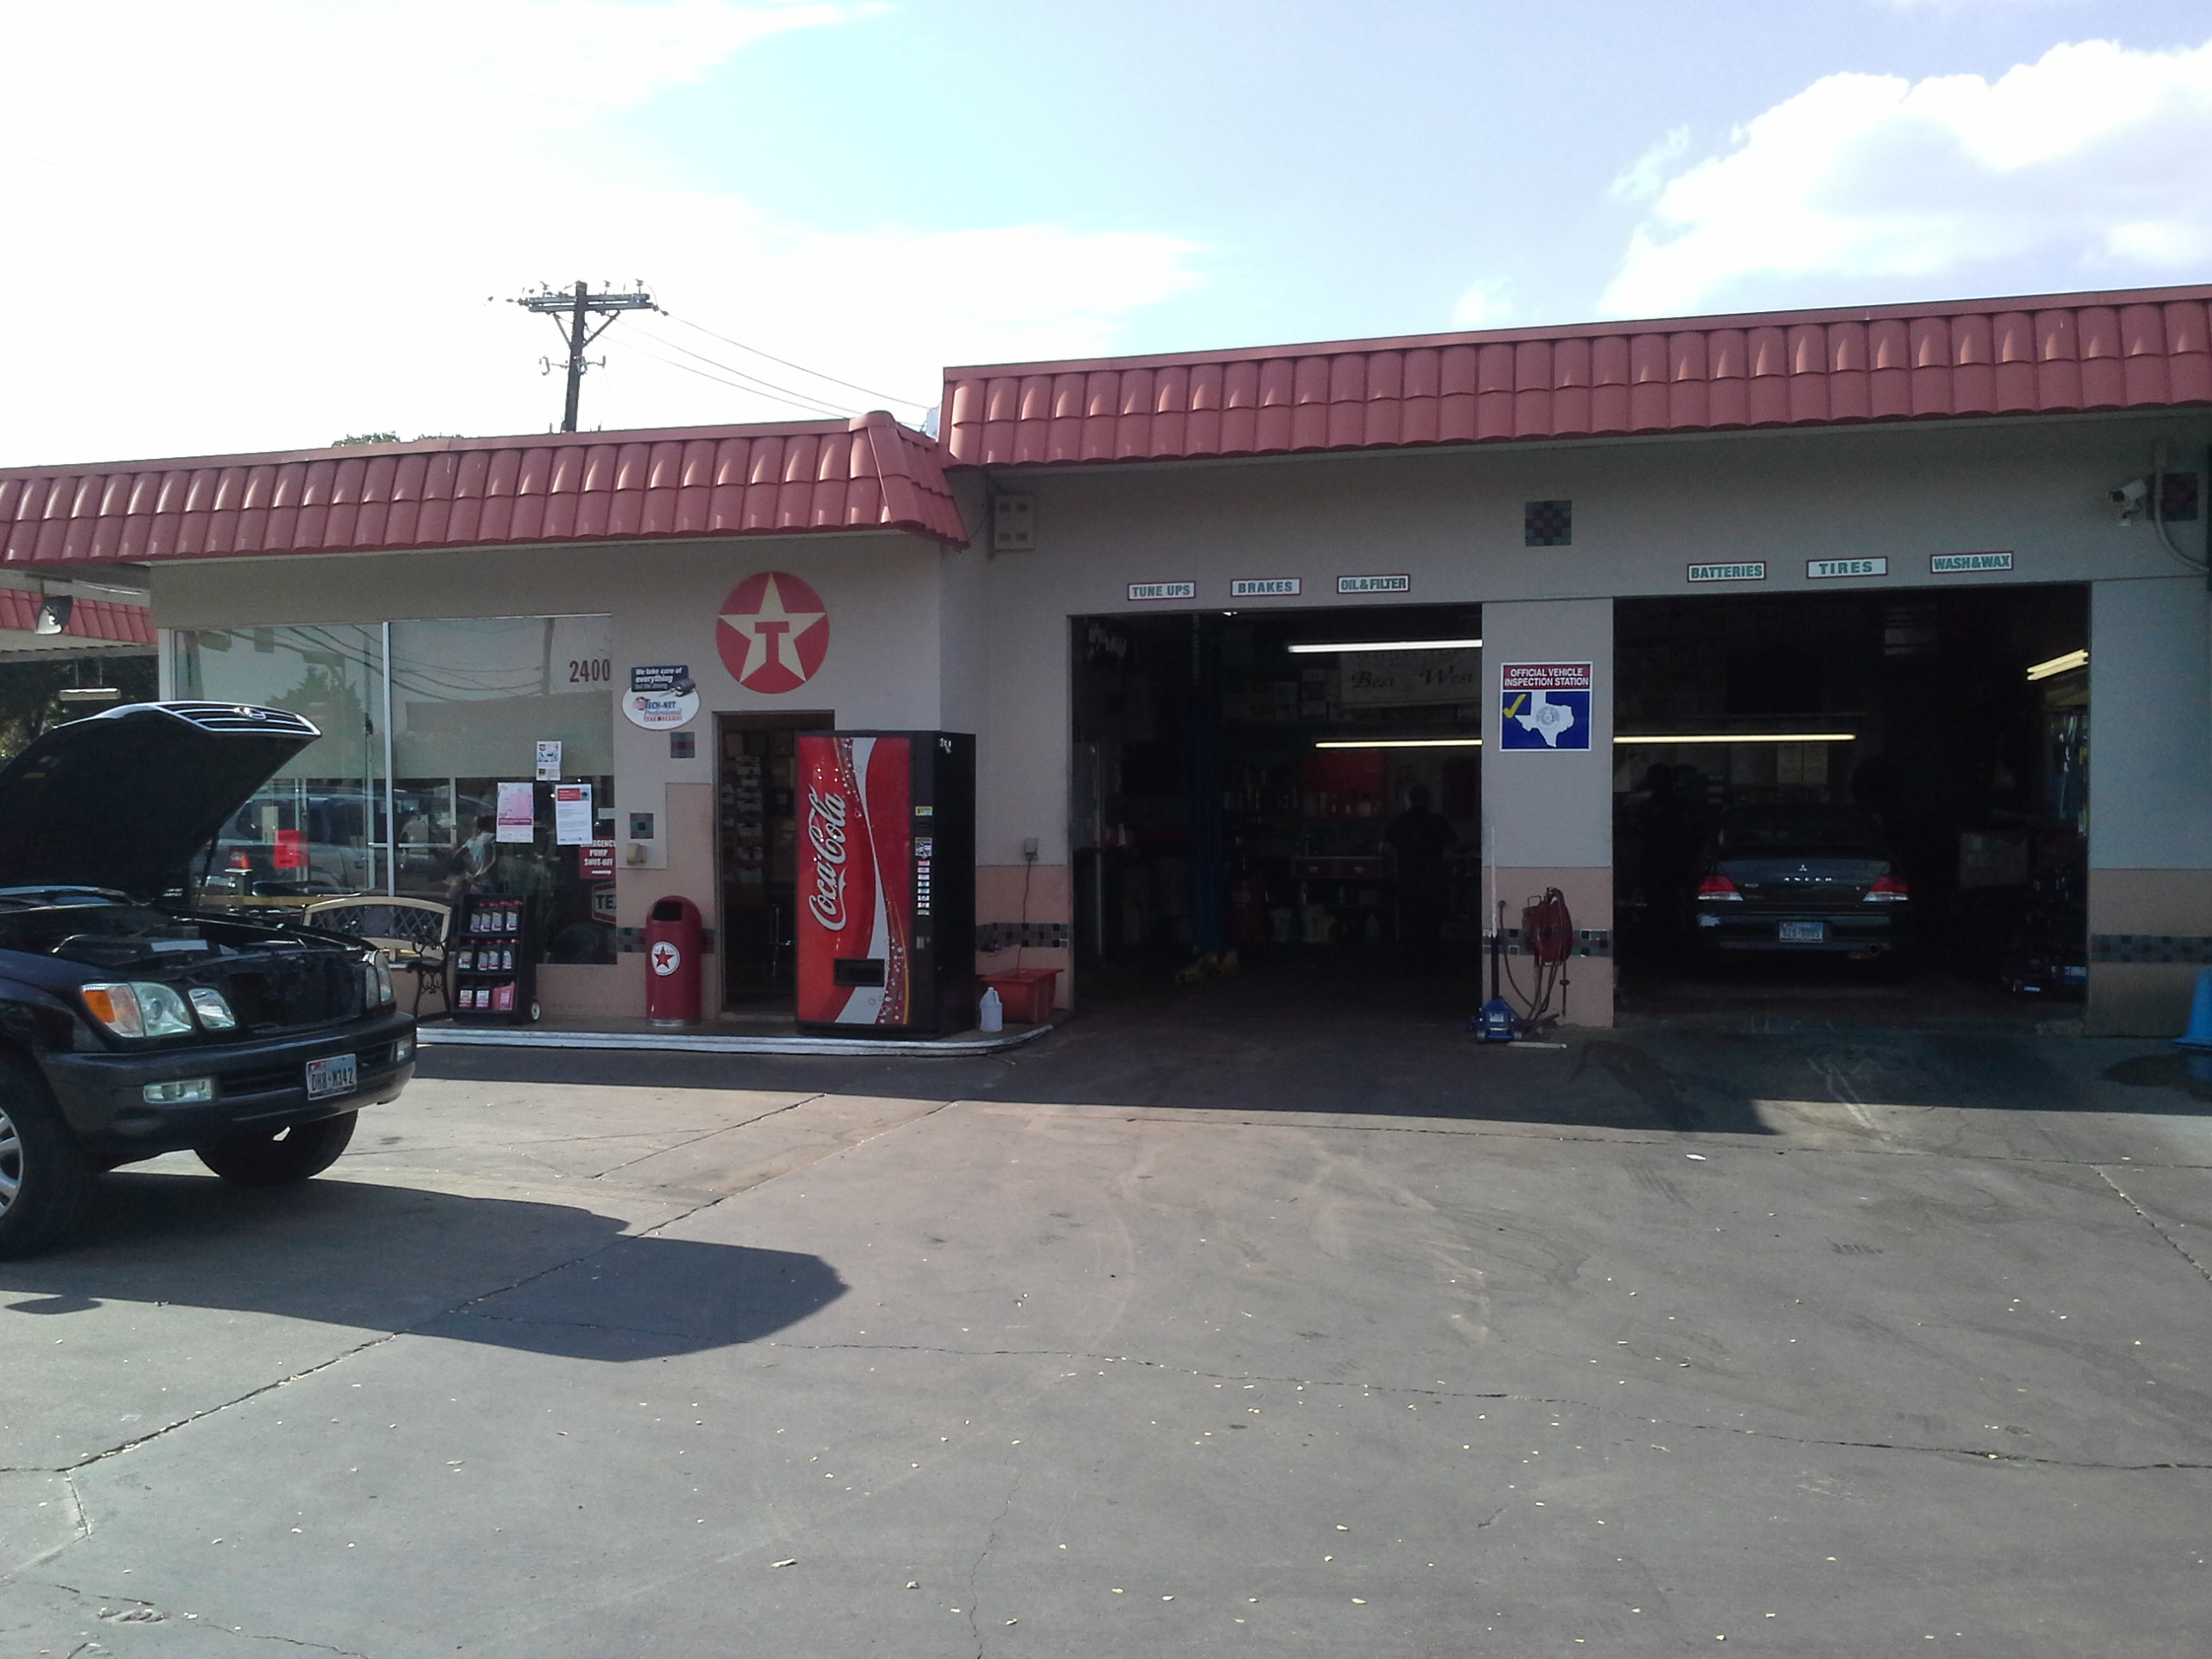 Tarrytown Texaco